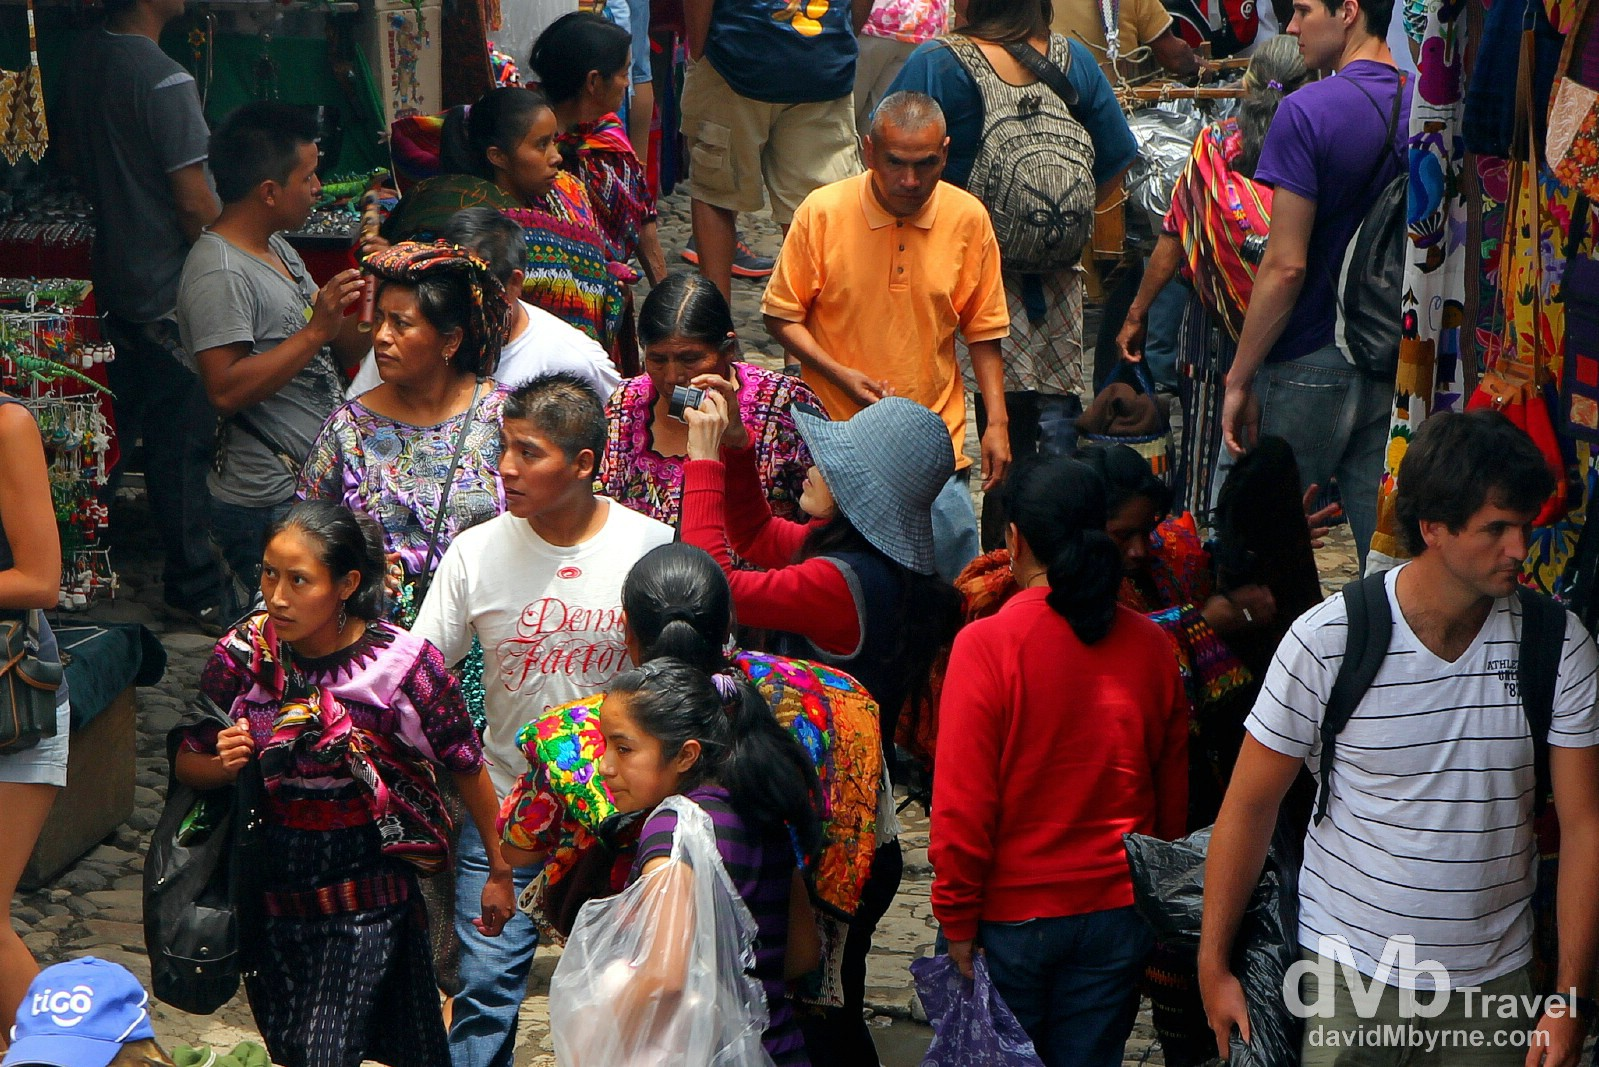 Market day in Chichicastenango (Chichi), Guatemala. May 23rd 2013.